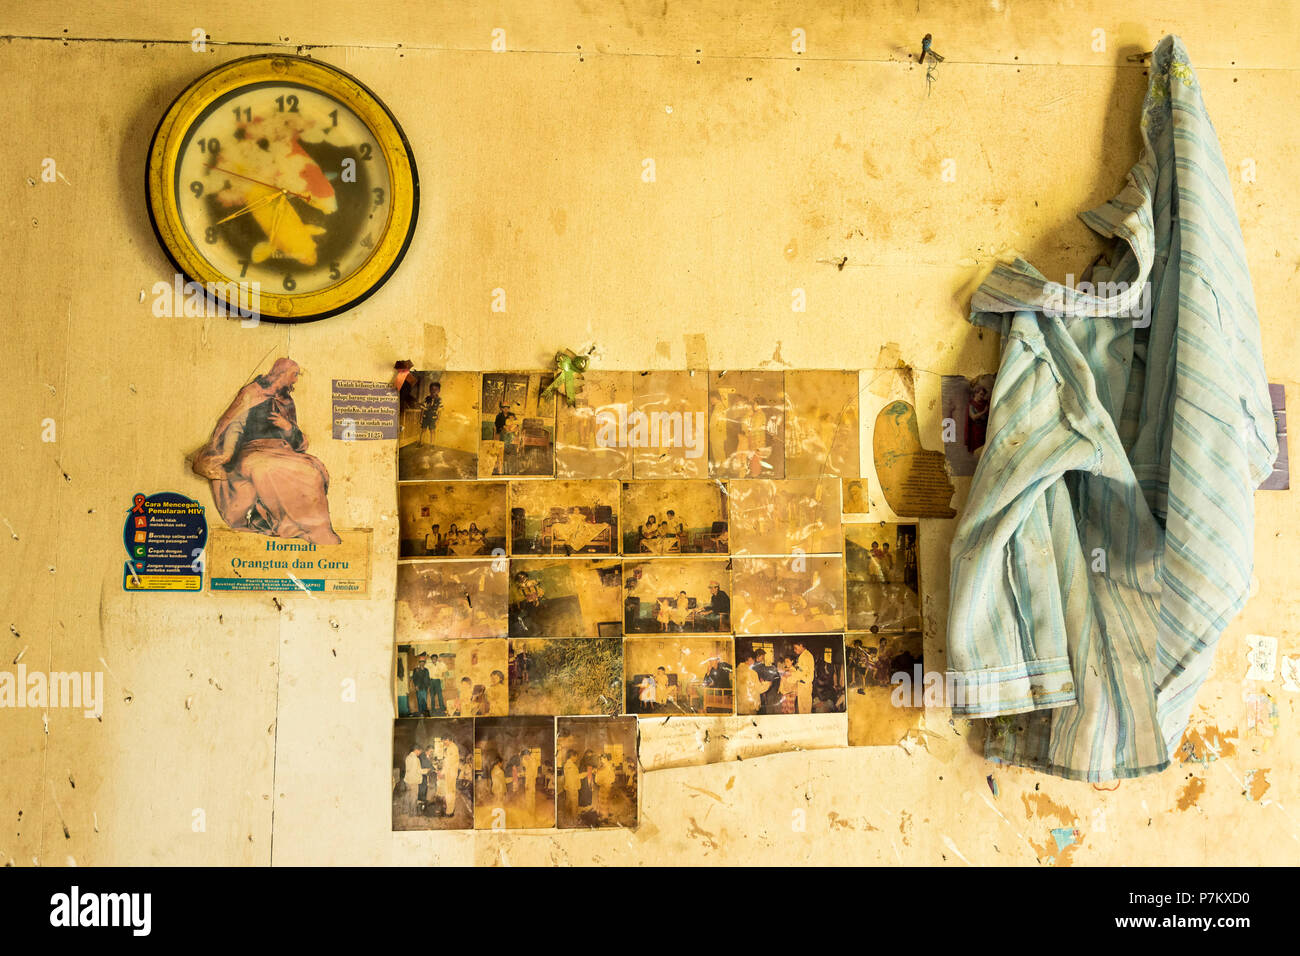 A room wall with family photos, a clock, shirt and religious portrait in an abandoned house in the red zone at the volcano Mt. Sinabung on Sumatra, Indonesia, - Stock Image